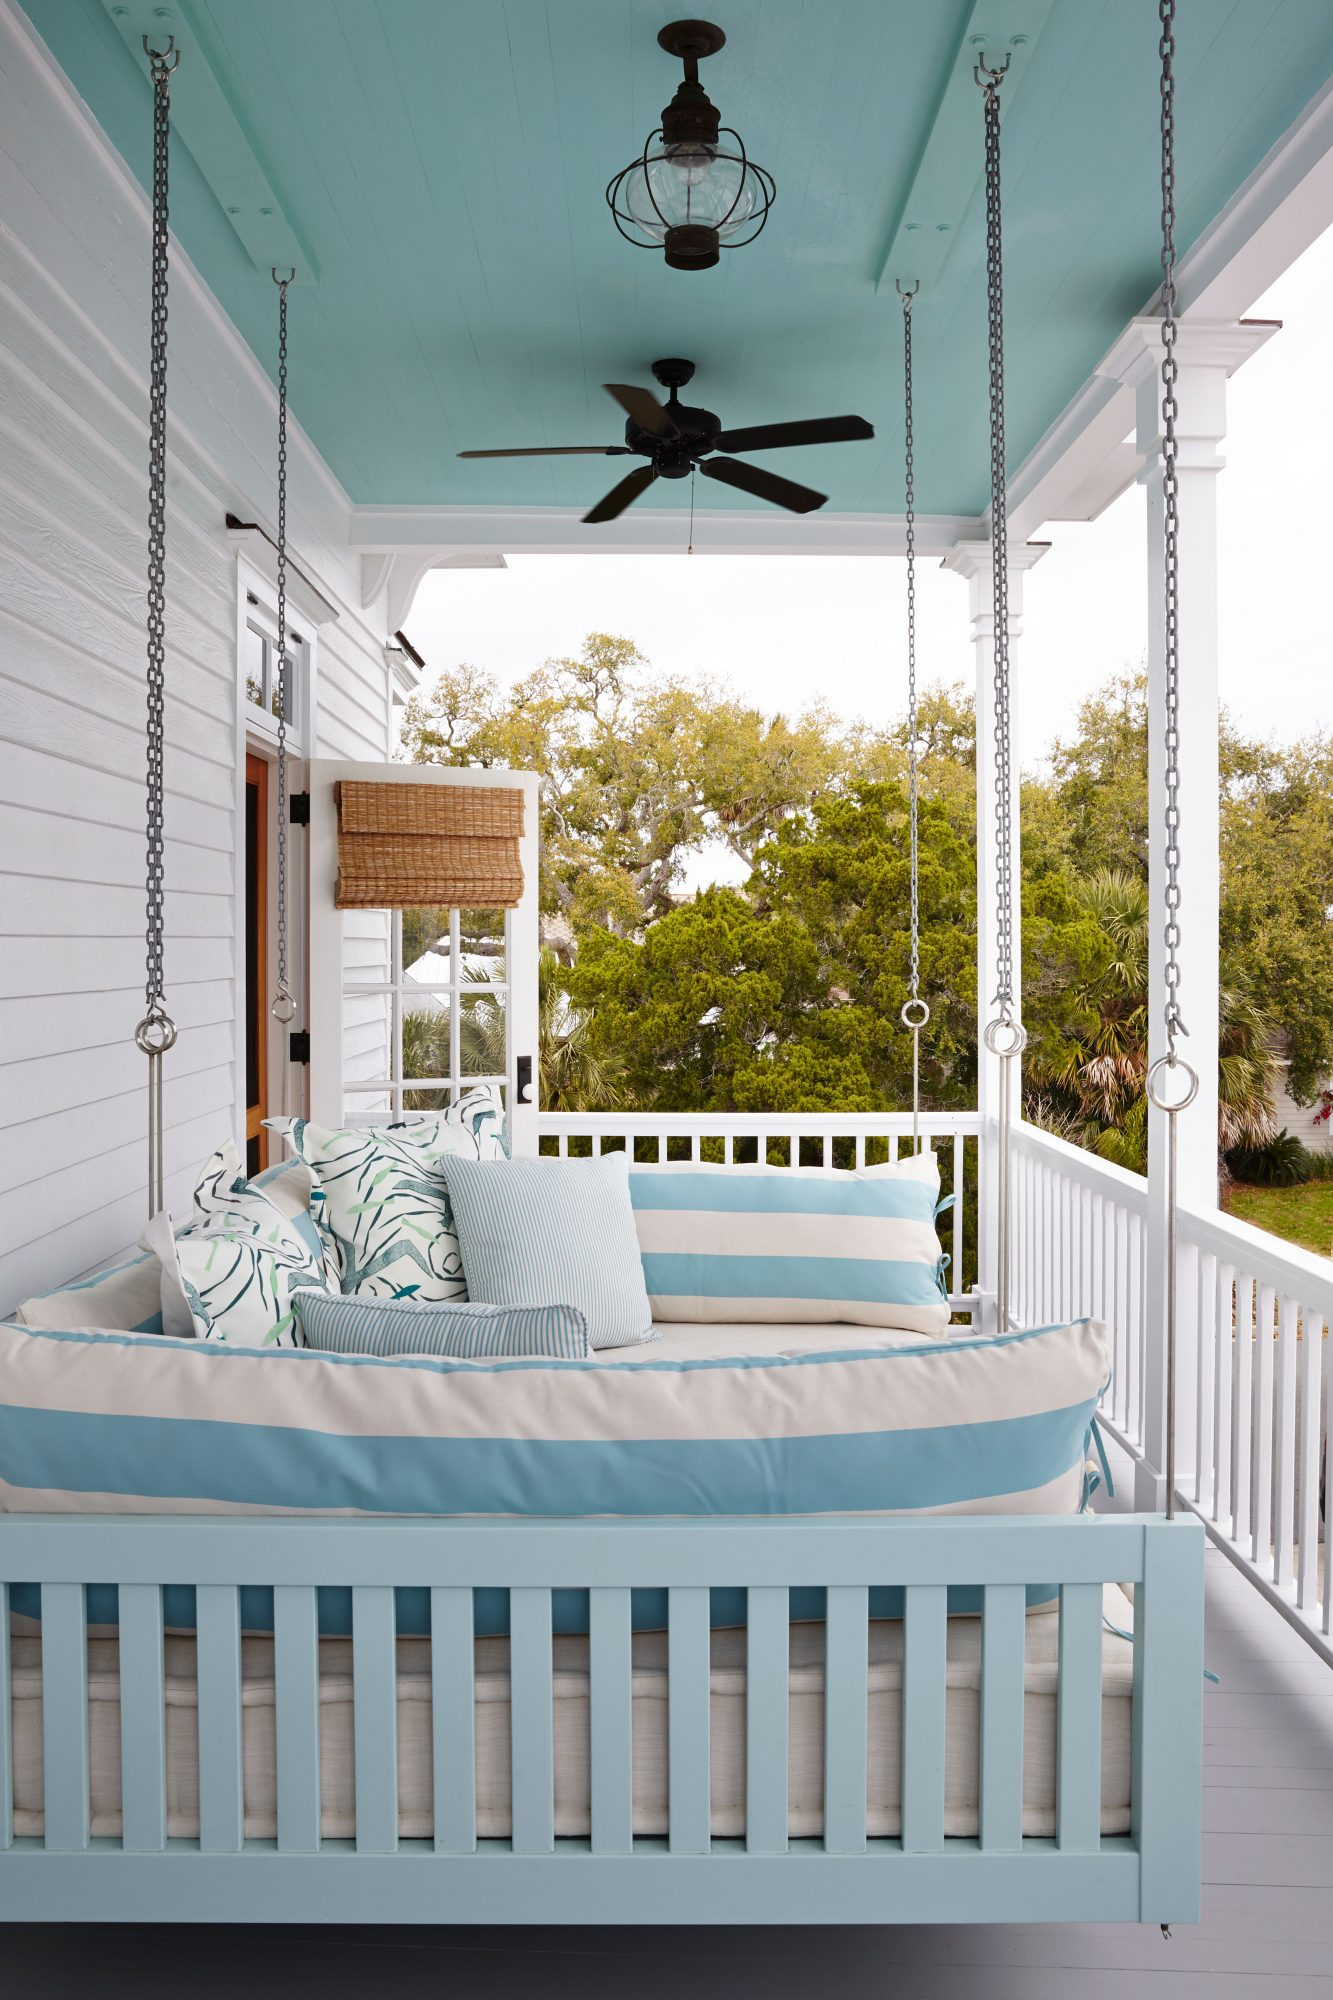 Robin's Egg blue is repeated on the painted ceiling and striped indoor/outdoor fabrics that adorn this King-size hanging bed overlooking the Gulf on Cedar Key, Florida.